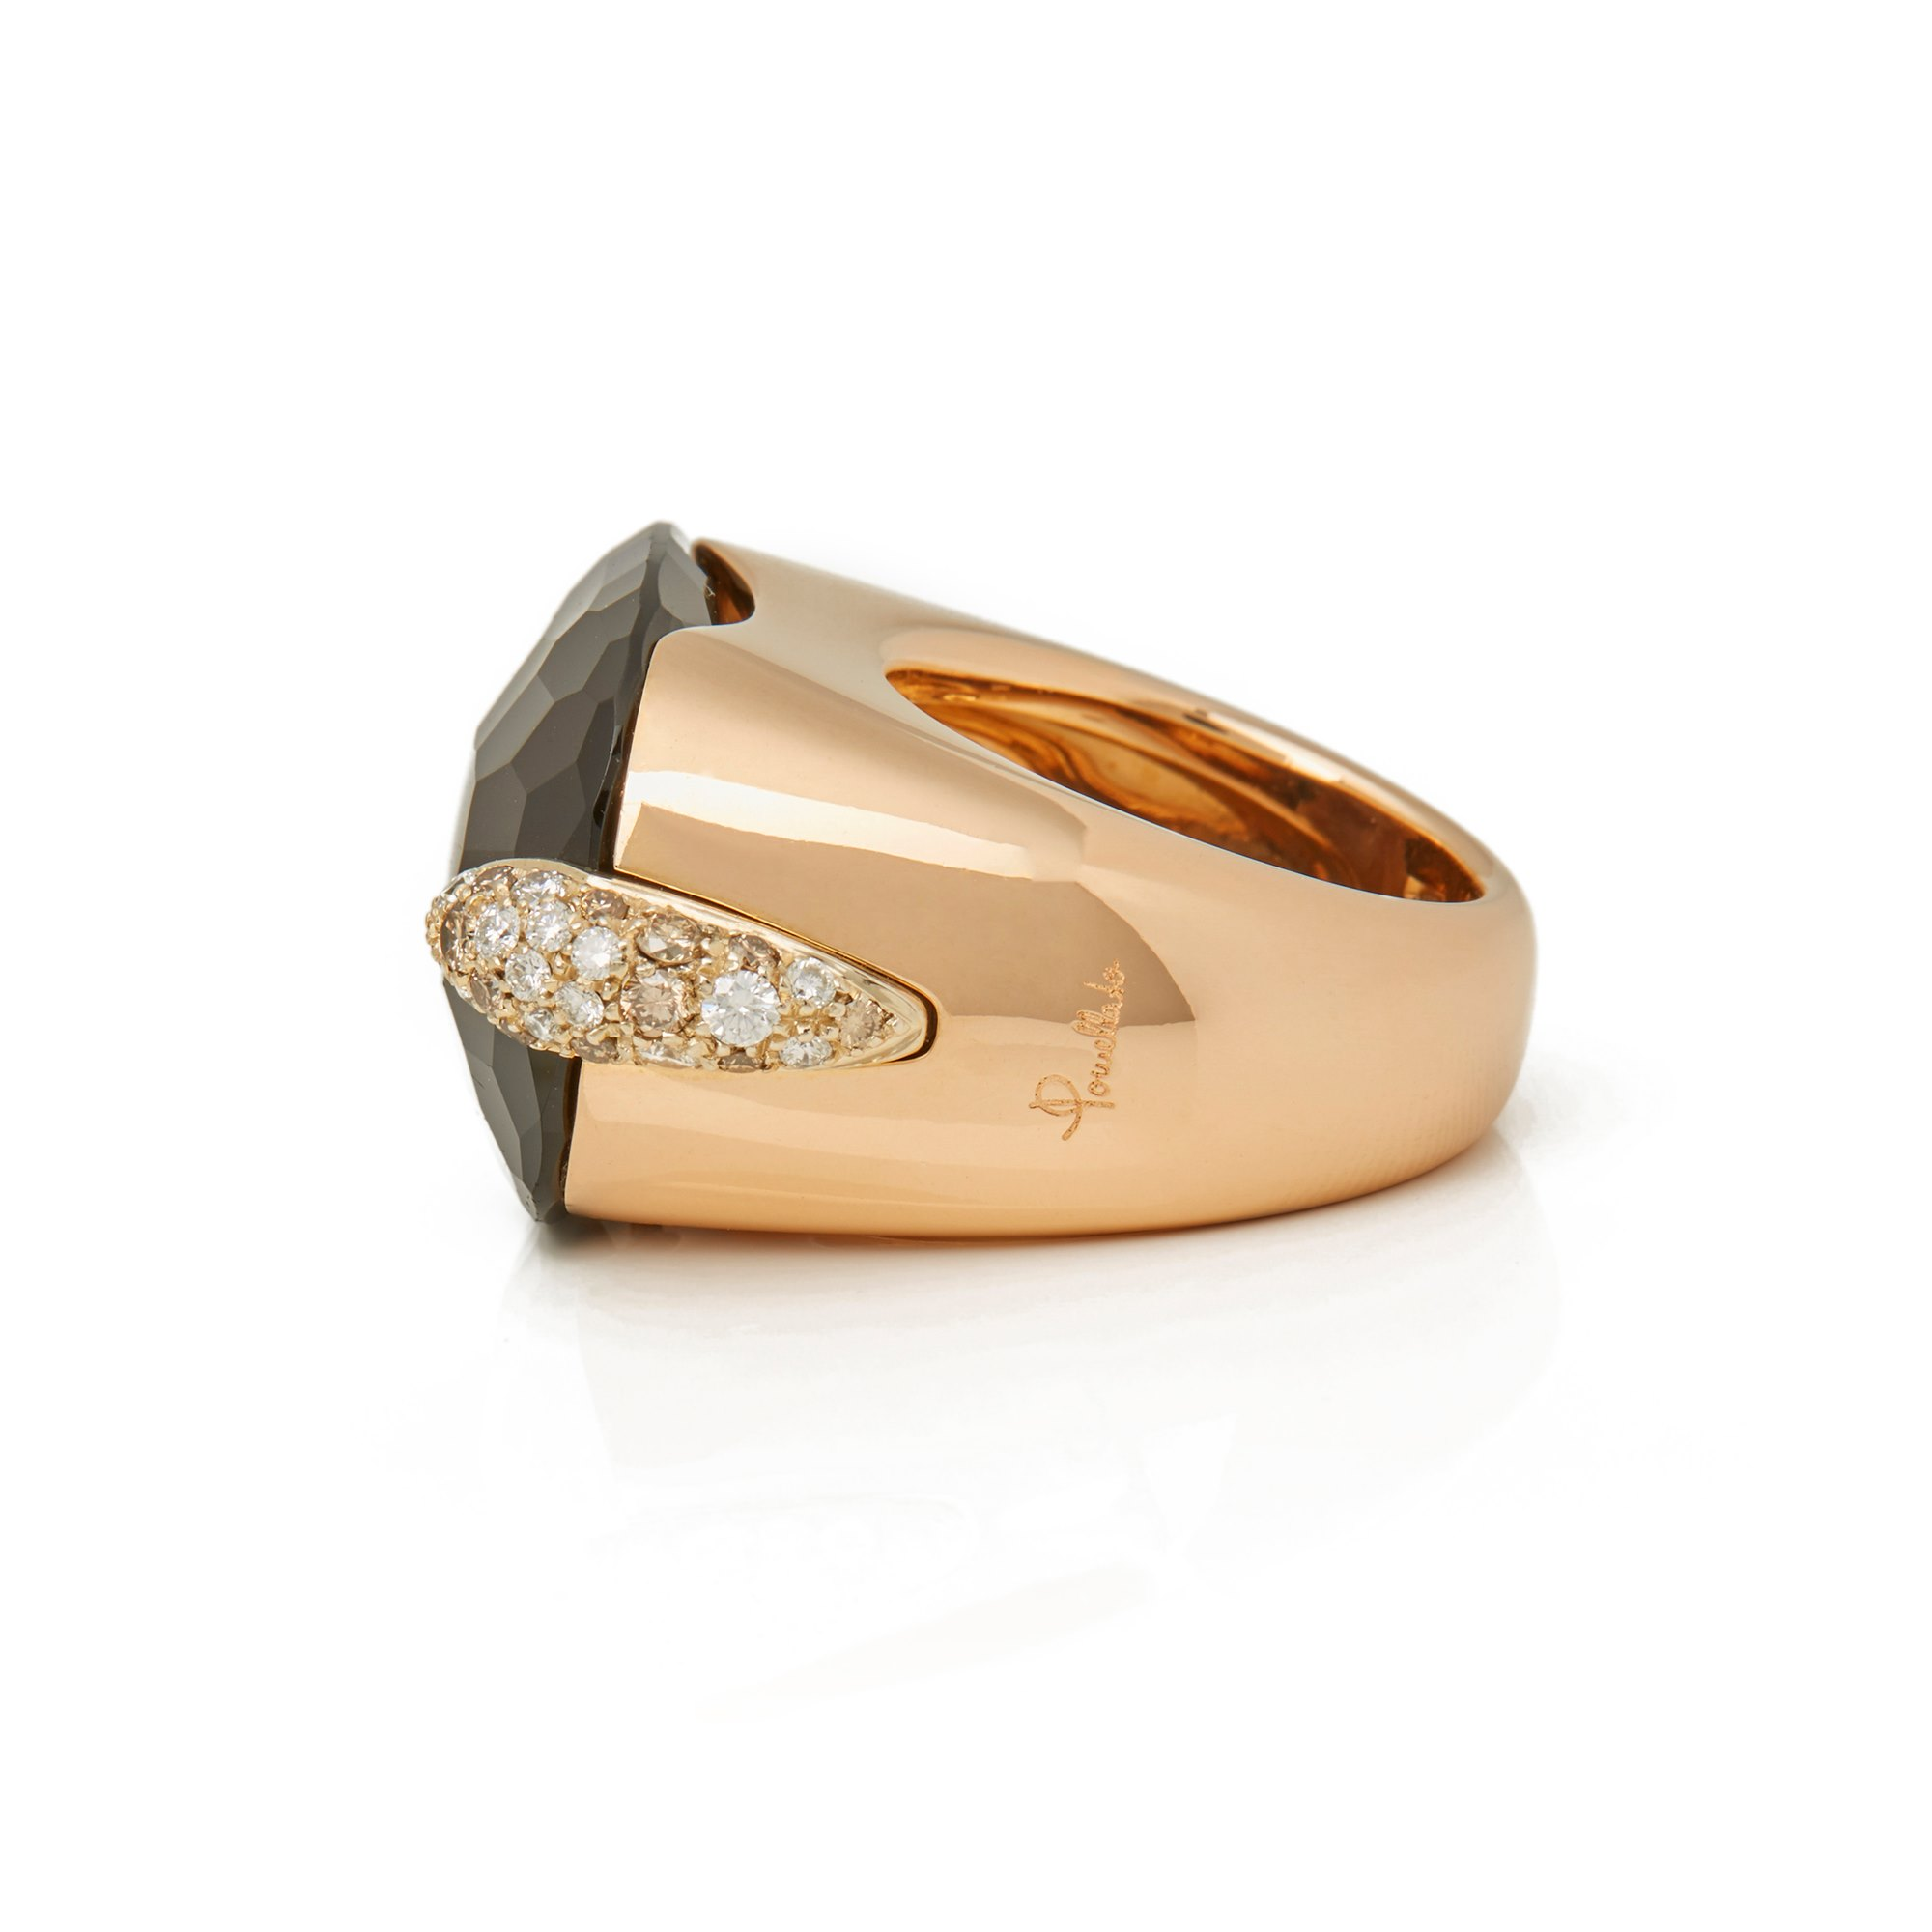 Pomellato 18k Yellow Gold Smoky Quartz & Diamond Cocktail Ring